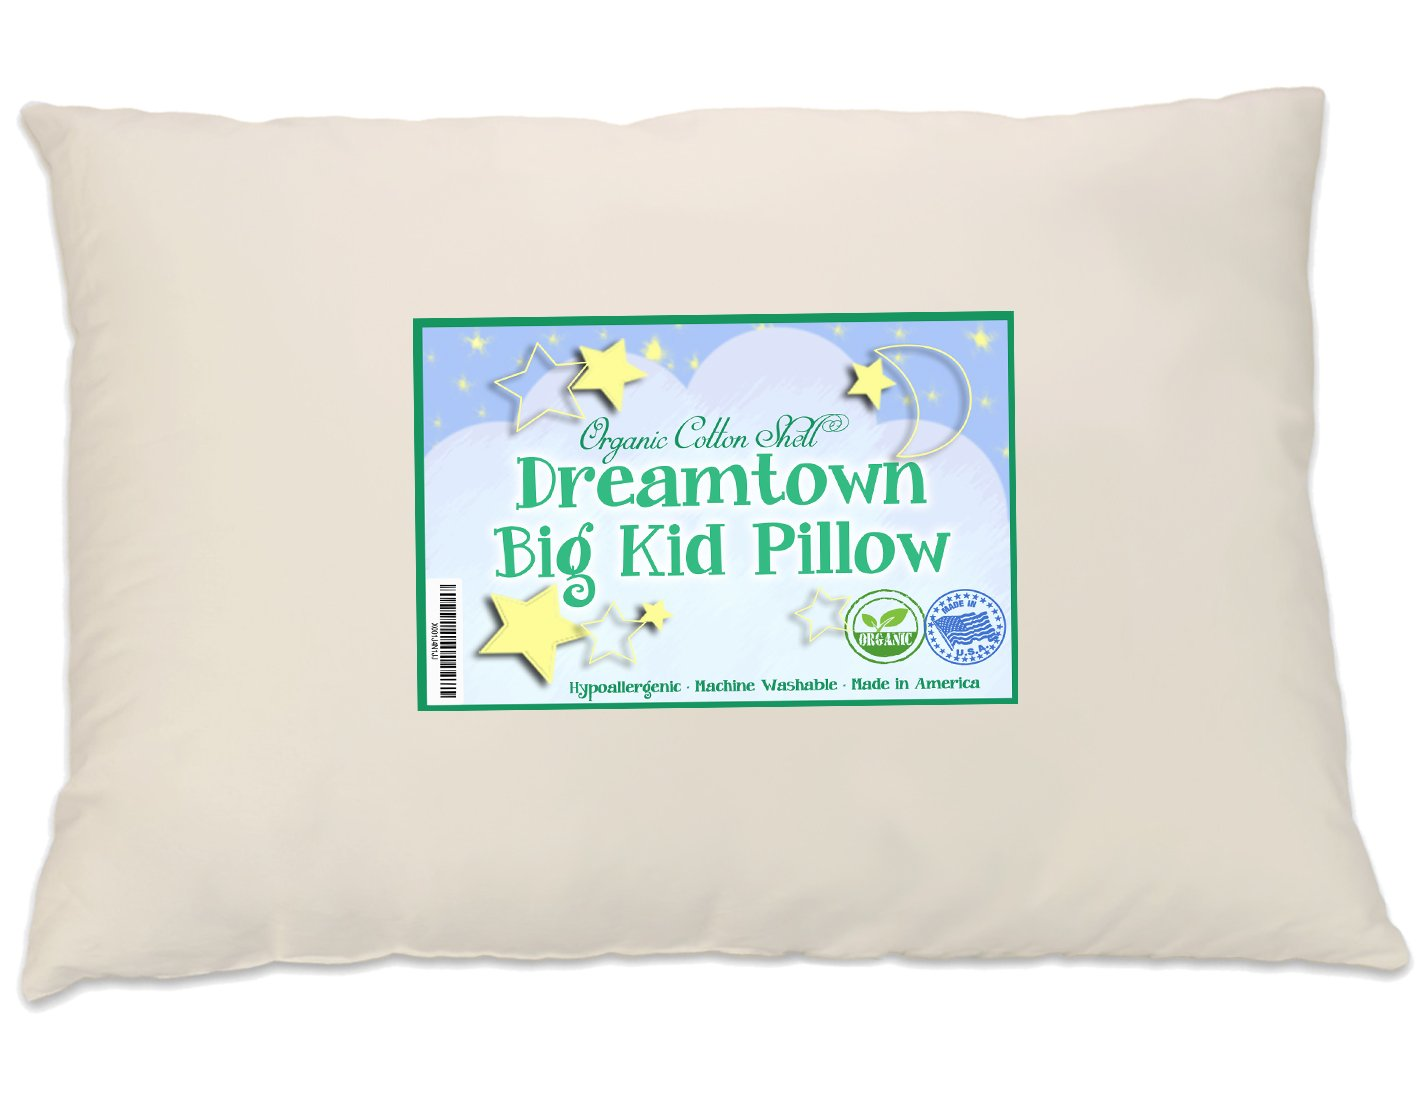 Dreamtown Kids Large Size Kids Pillow (Big Kid Pillow Recommended for Ages 6-8) with a Soft Organic Cotton Shell 16x22 (13x19 After Filled), Made in USA